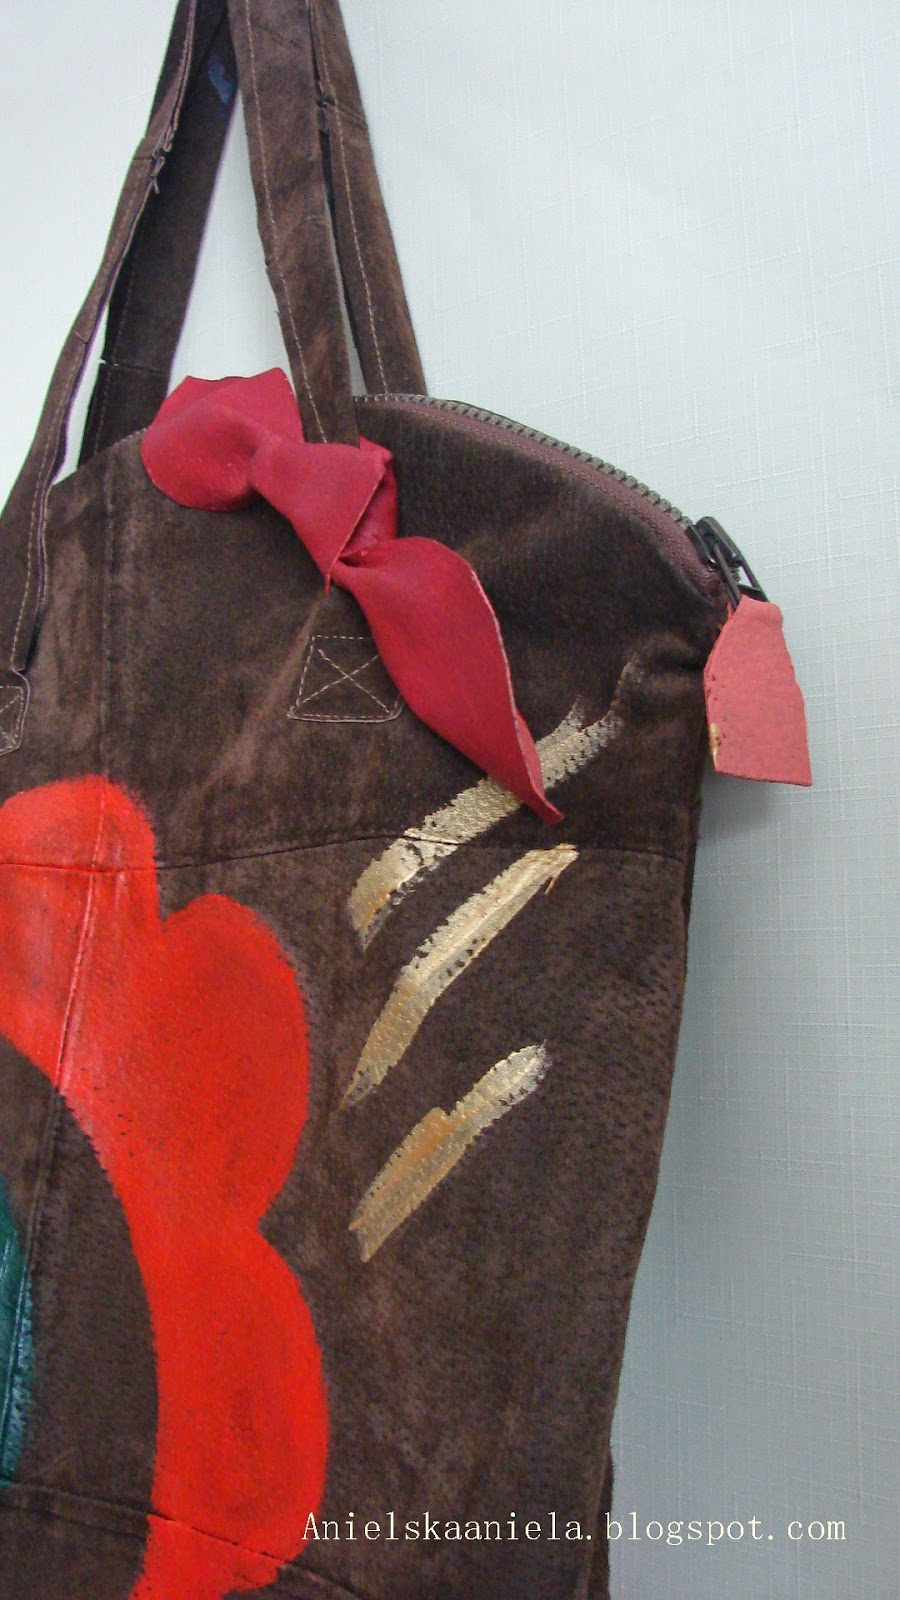 DIY Burberry Prorsum inspired leather handbag skórzana torebka z recyclingu inspirowana Burberry diy